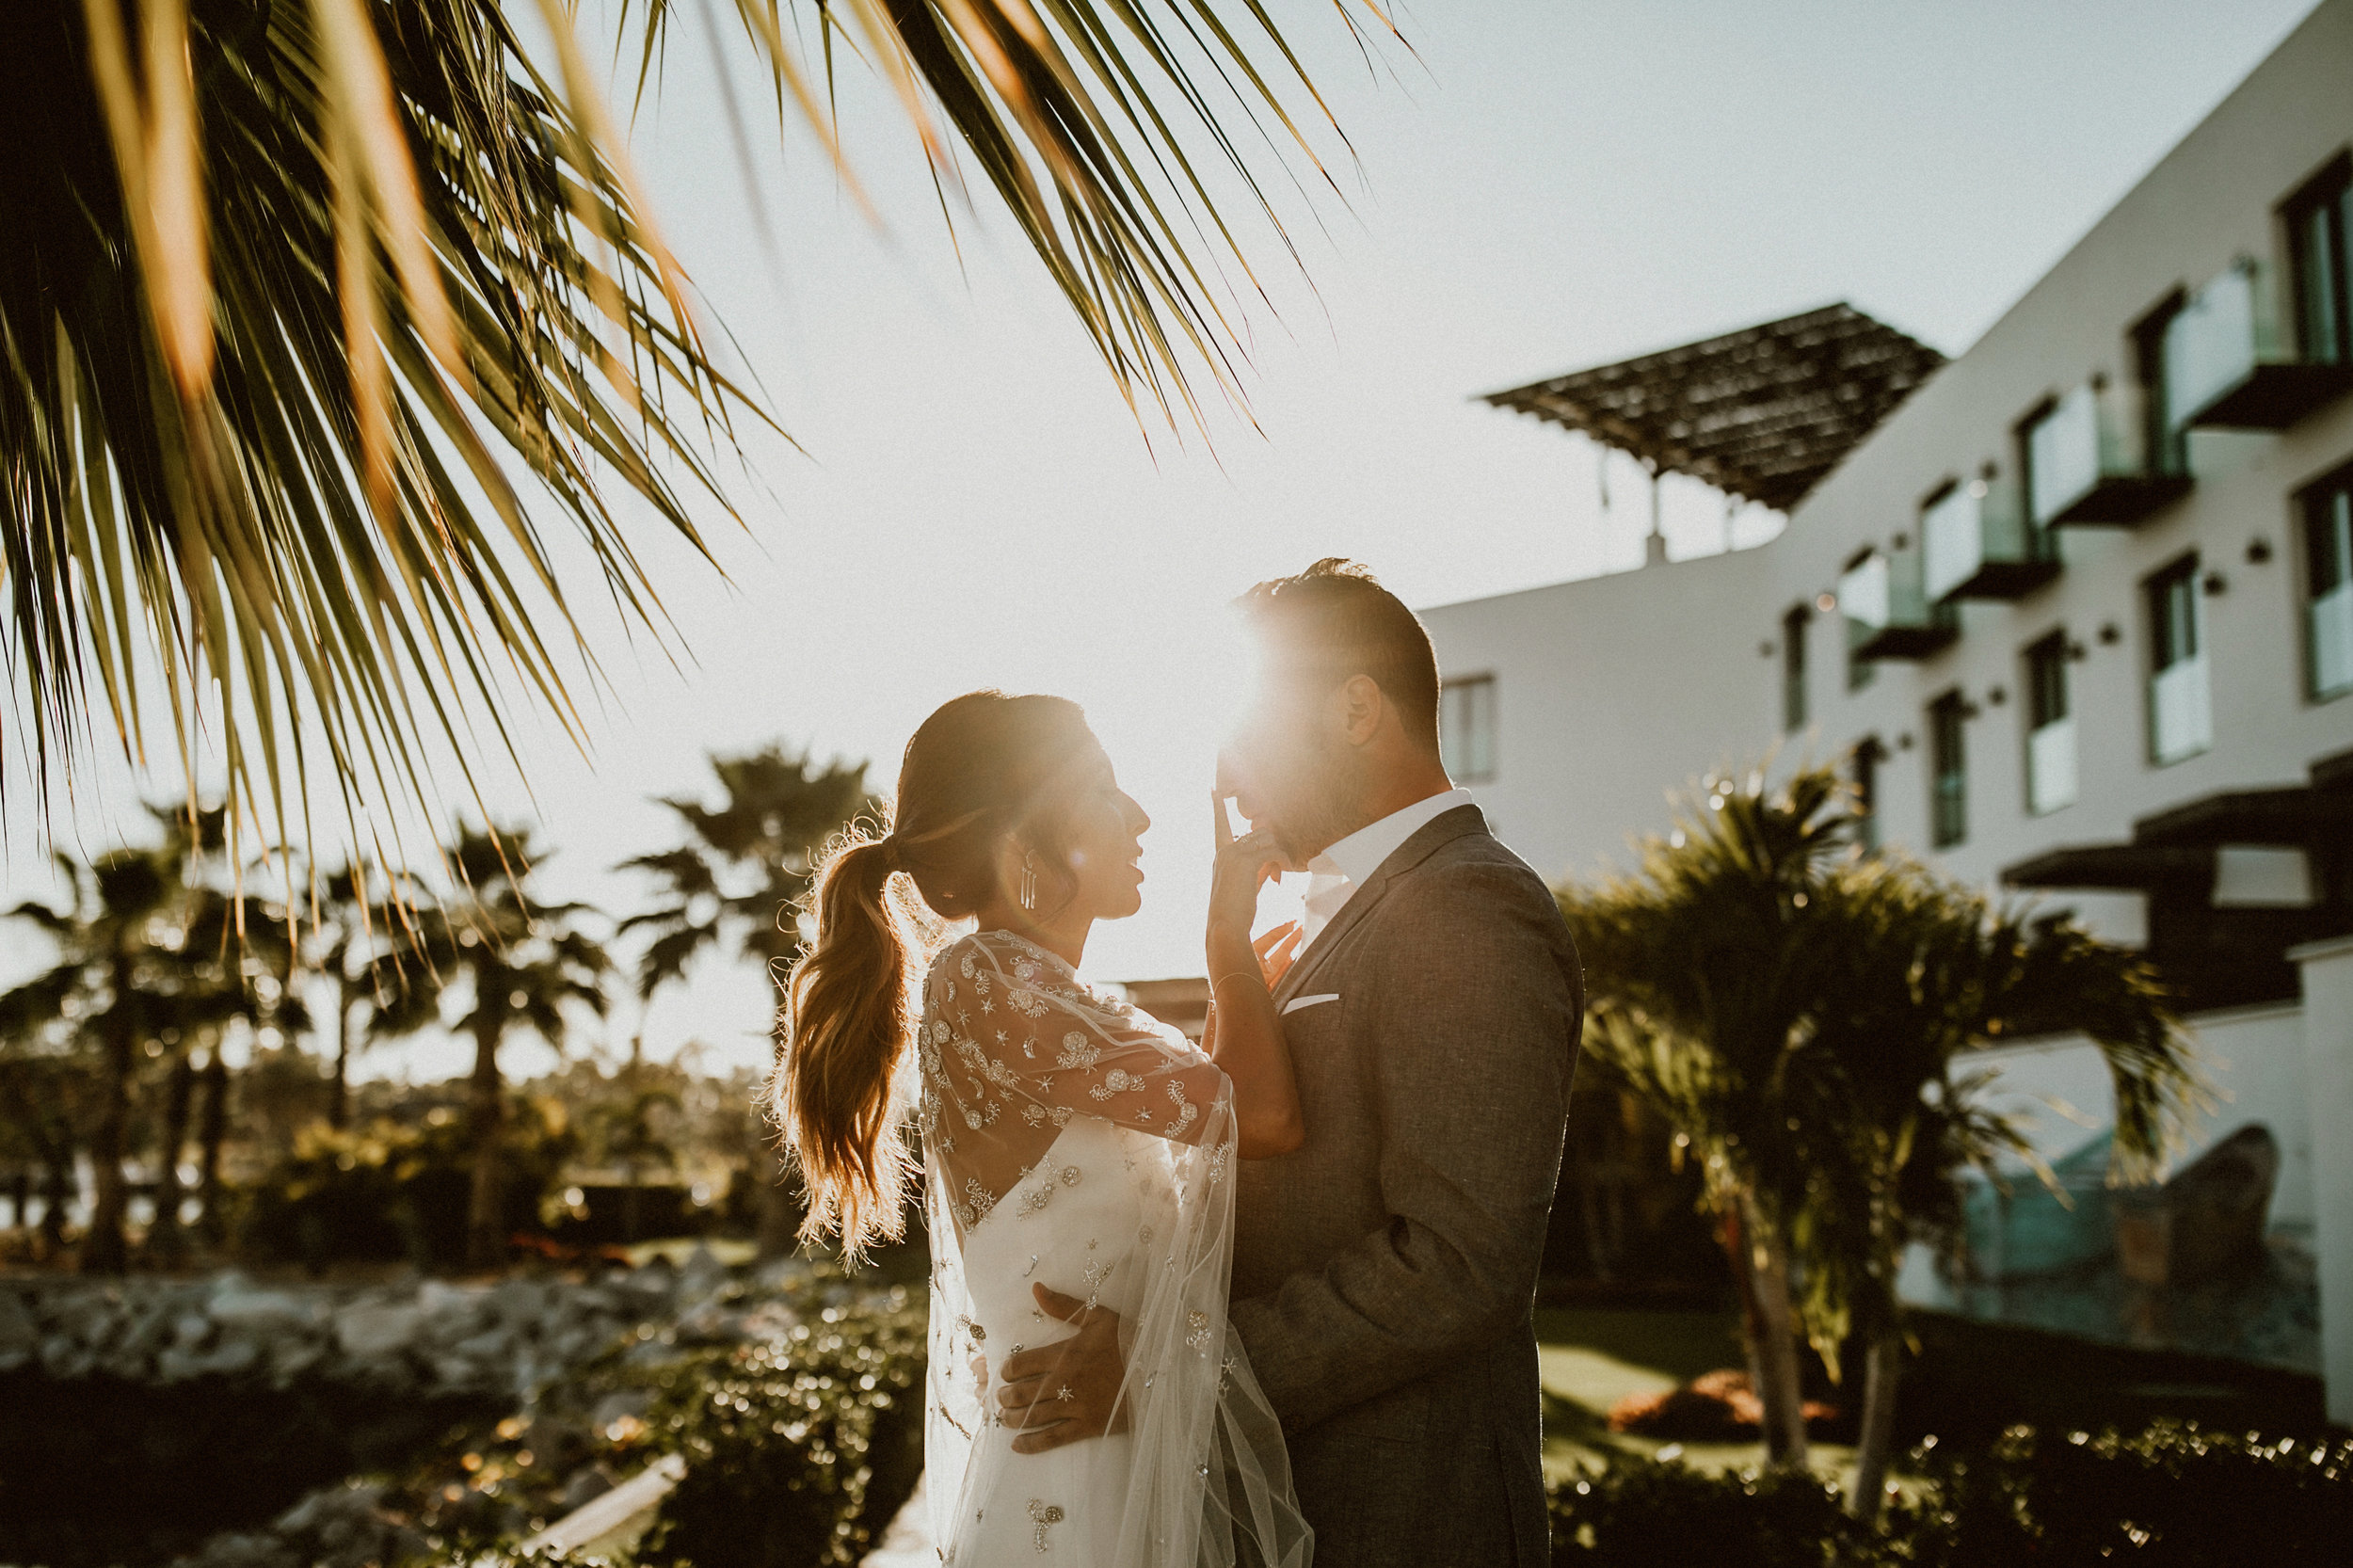 Ashley and Andy sharing a special moment at Hotel El Ganzo in Los Cabos, Mexico.